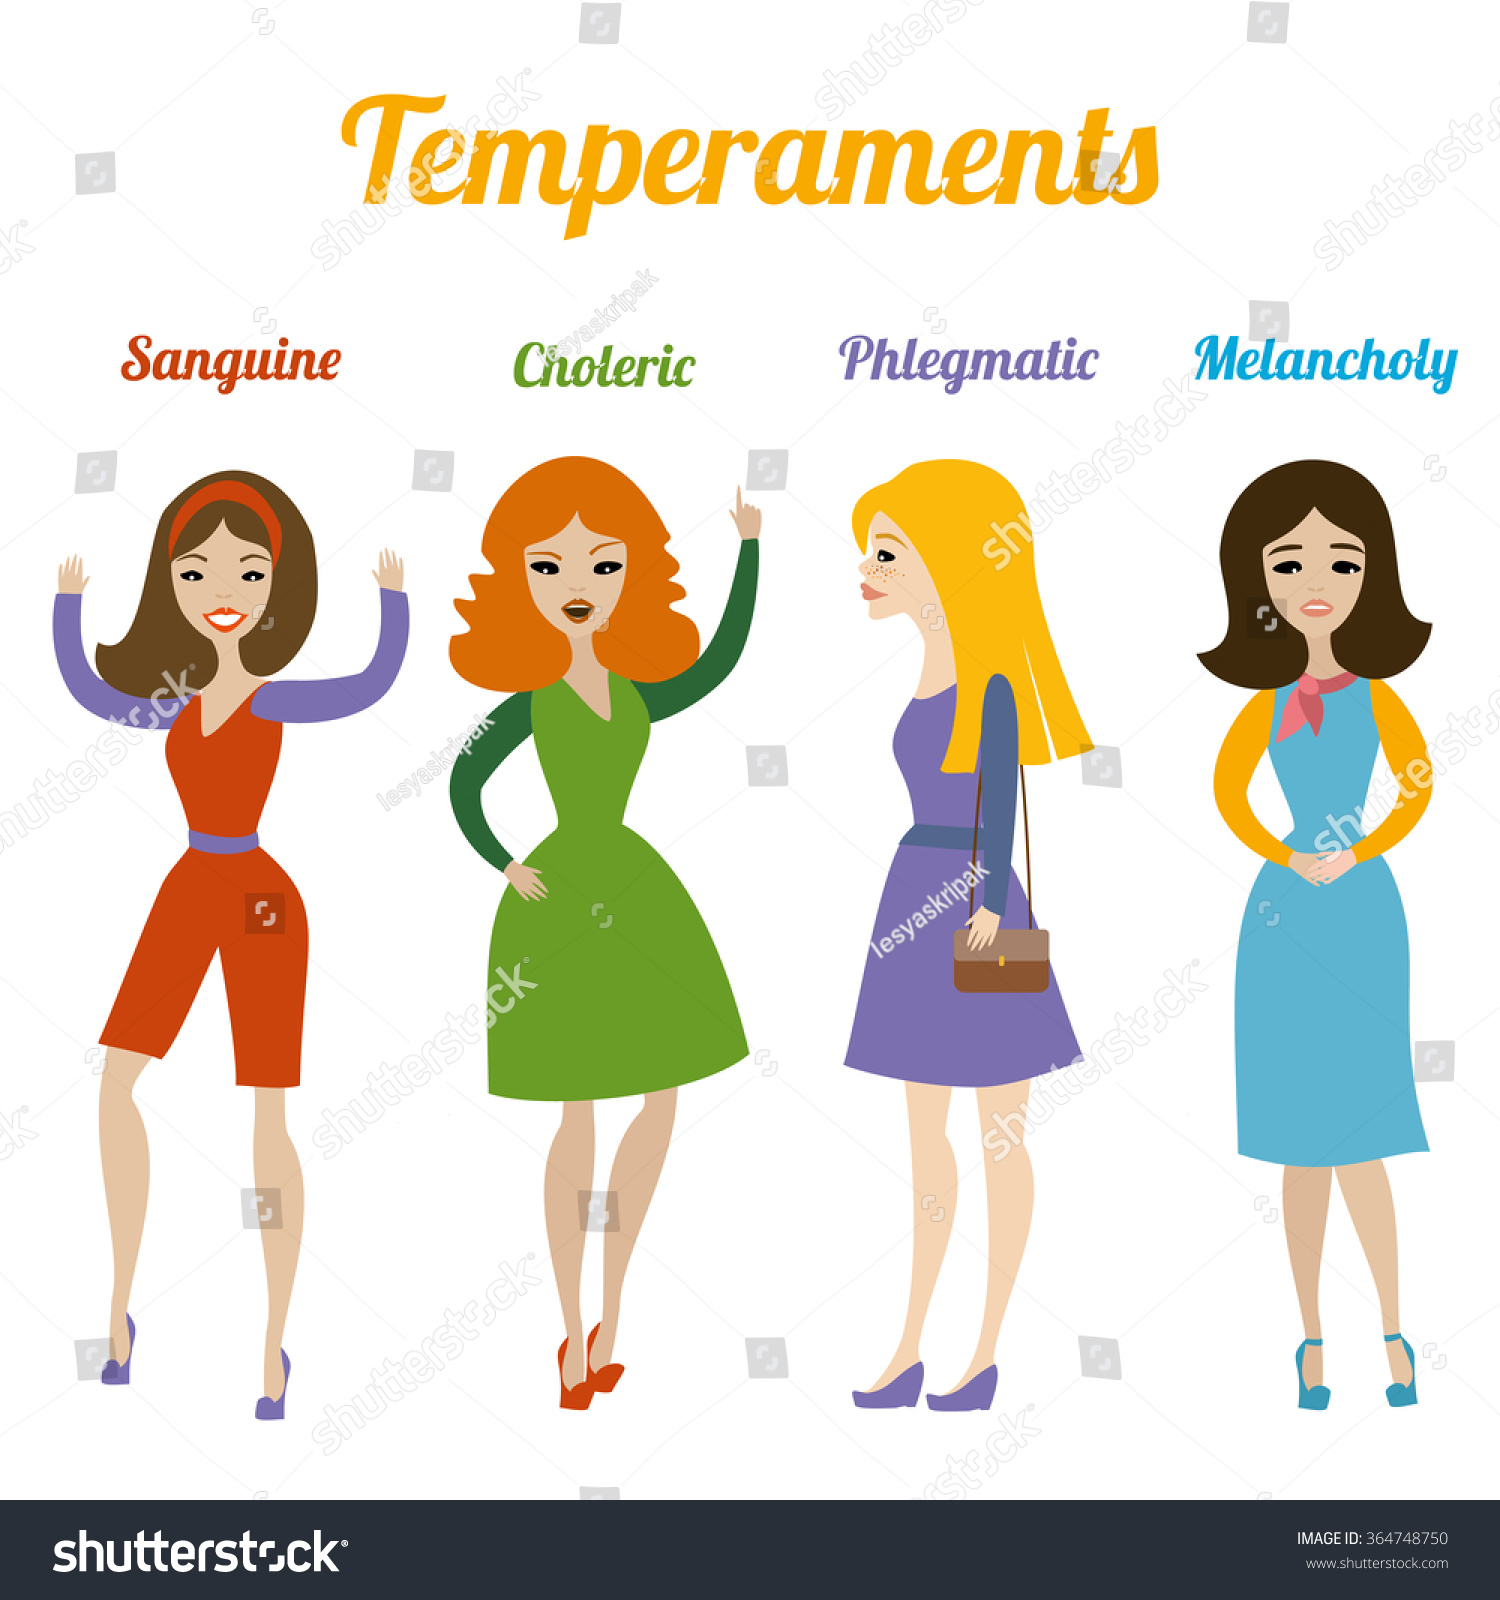 Sanguine phlegmatic temperament